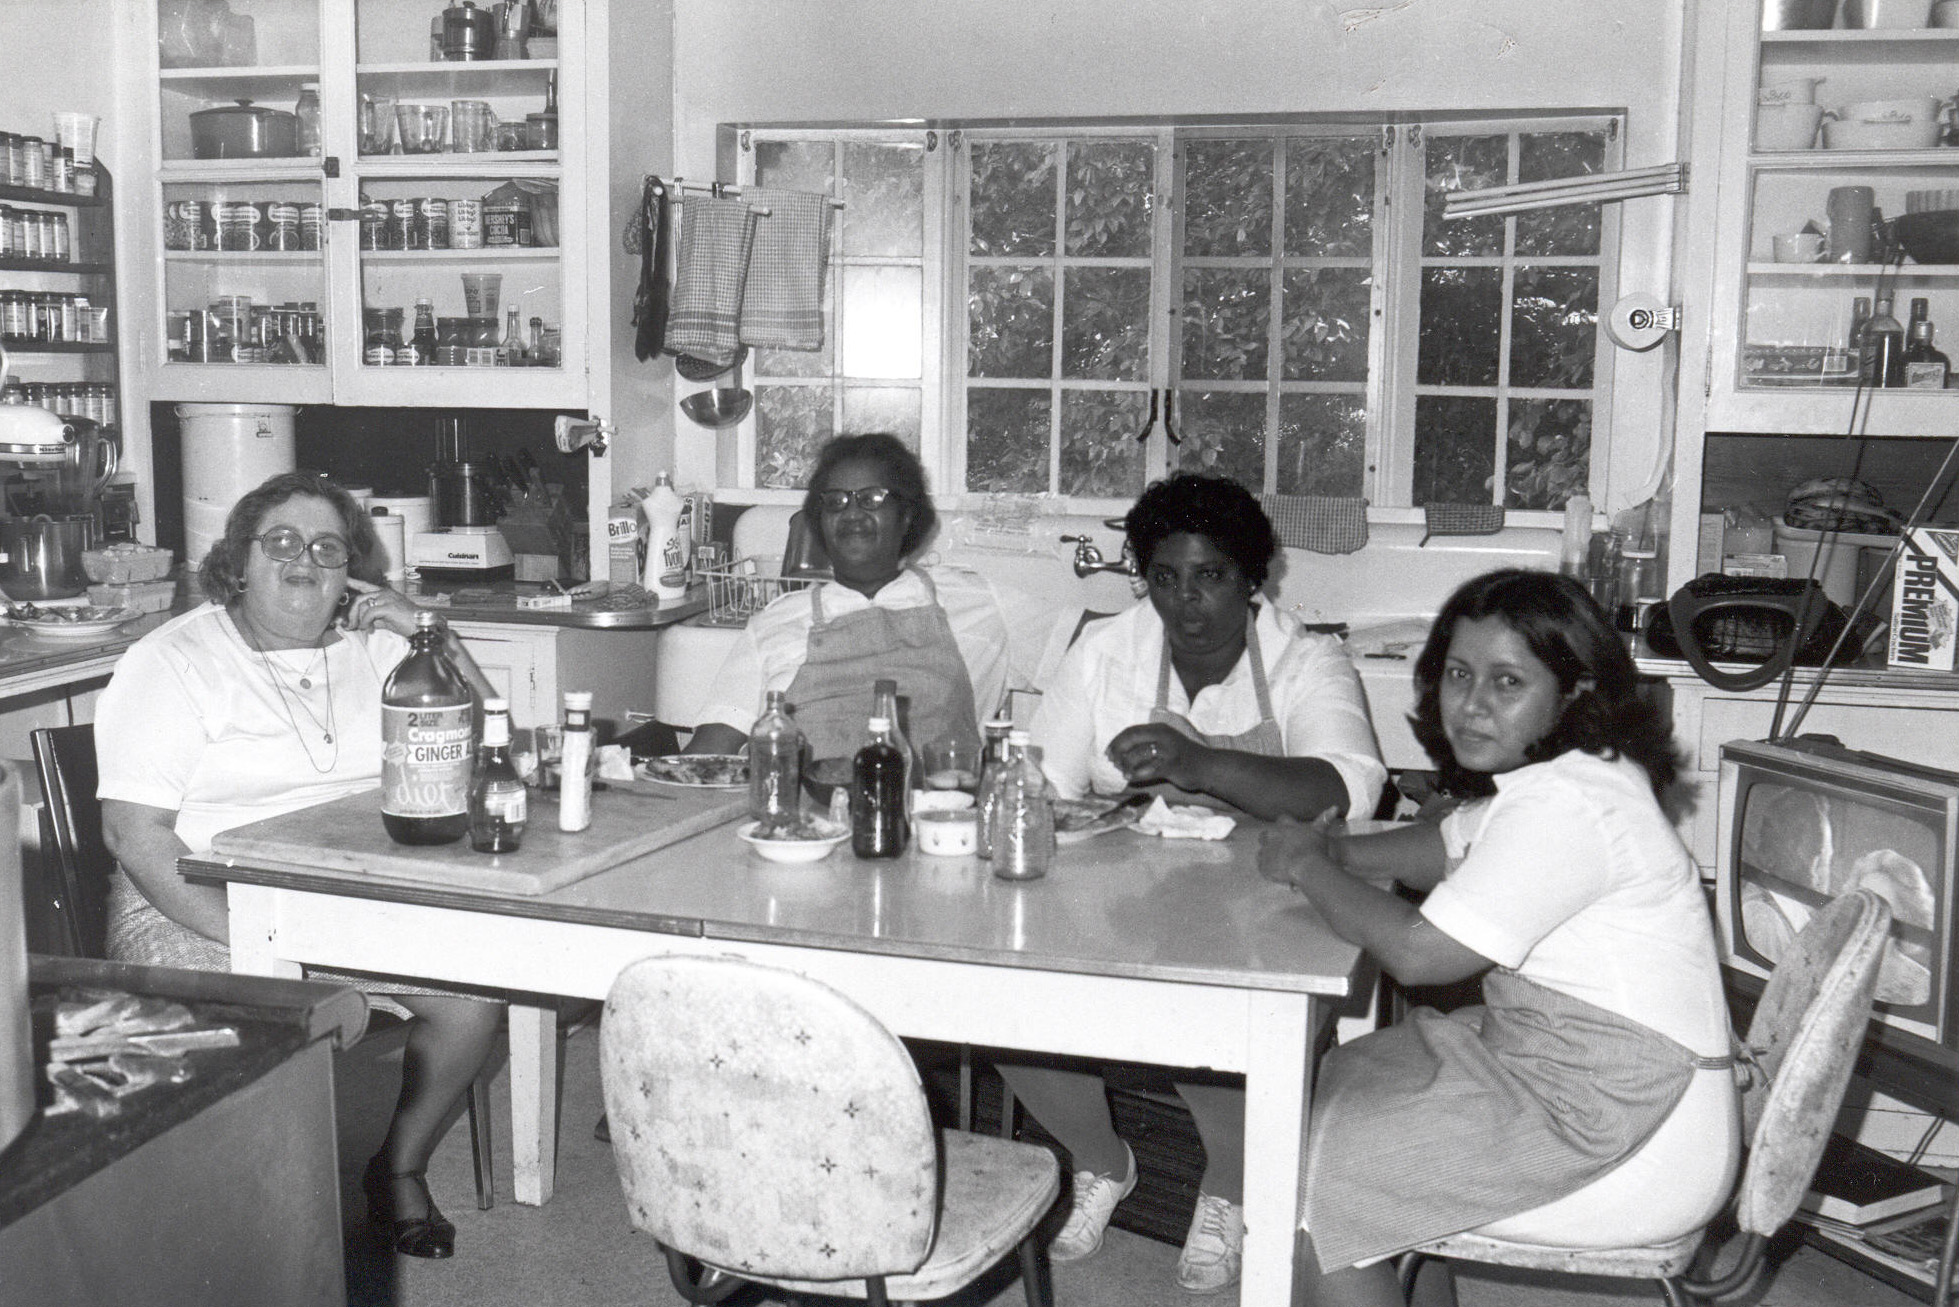 Chef Bess Everson and kitchen staff in the original Fellows Building kitchen, ca. 1977